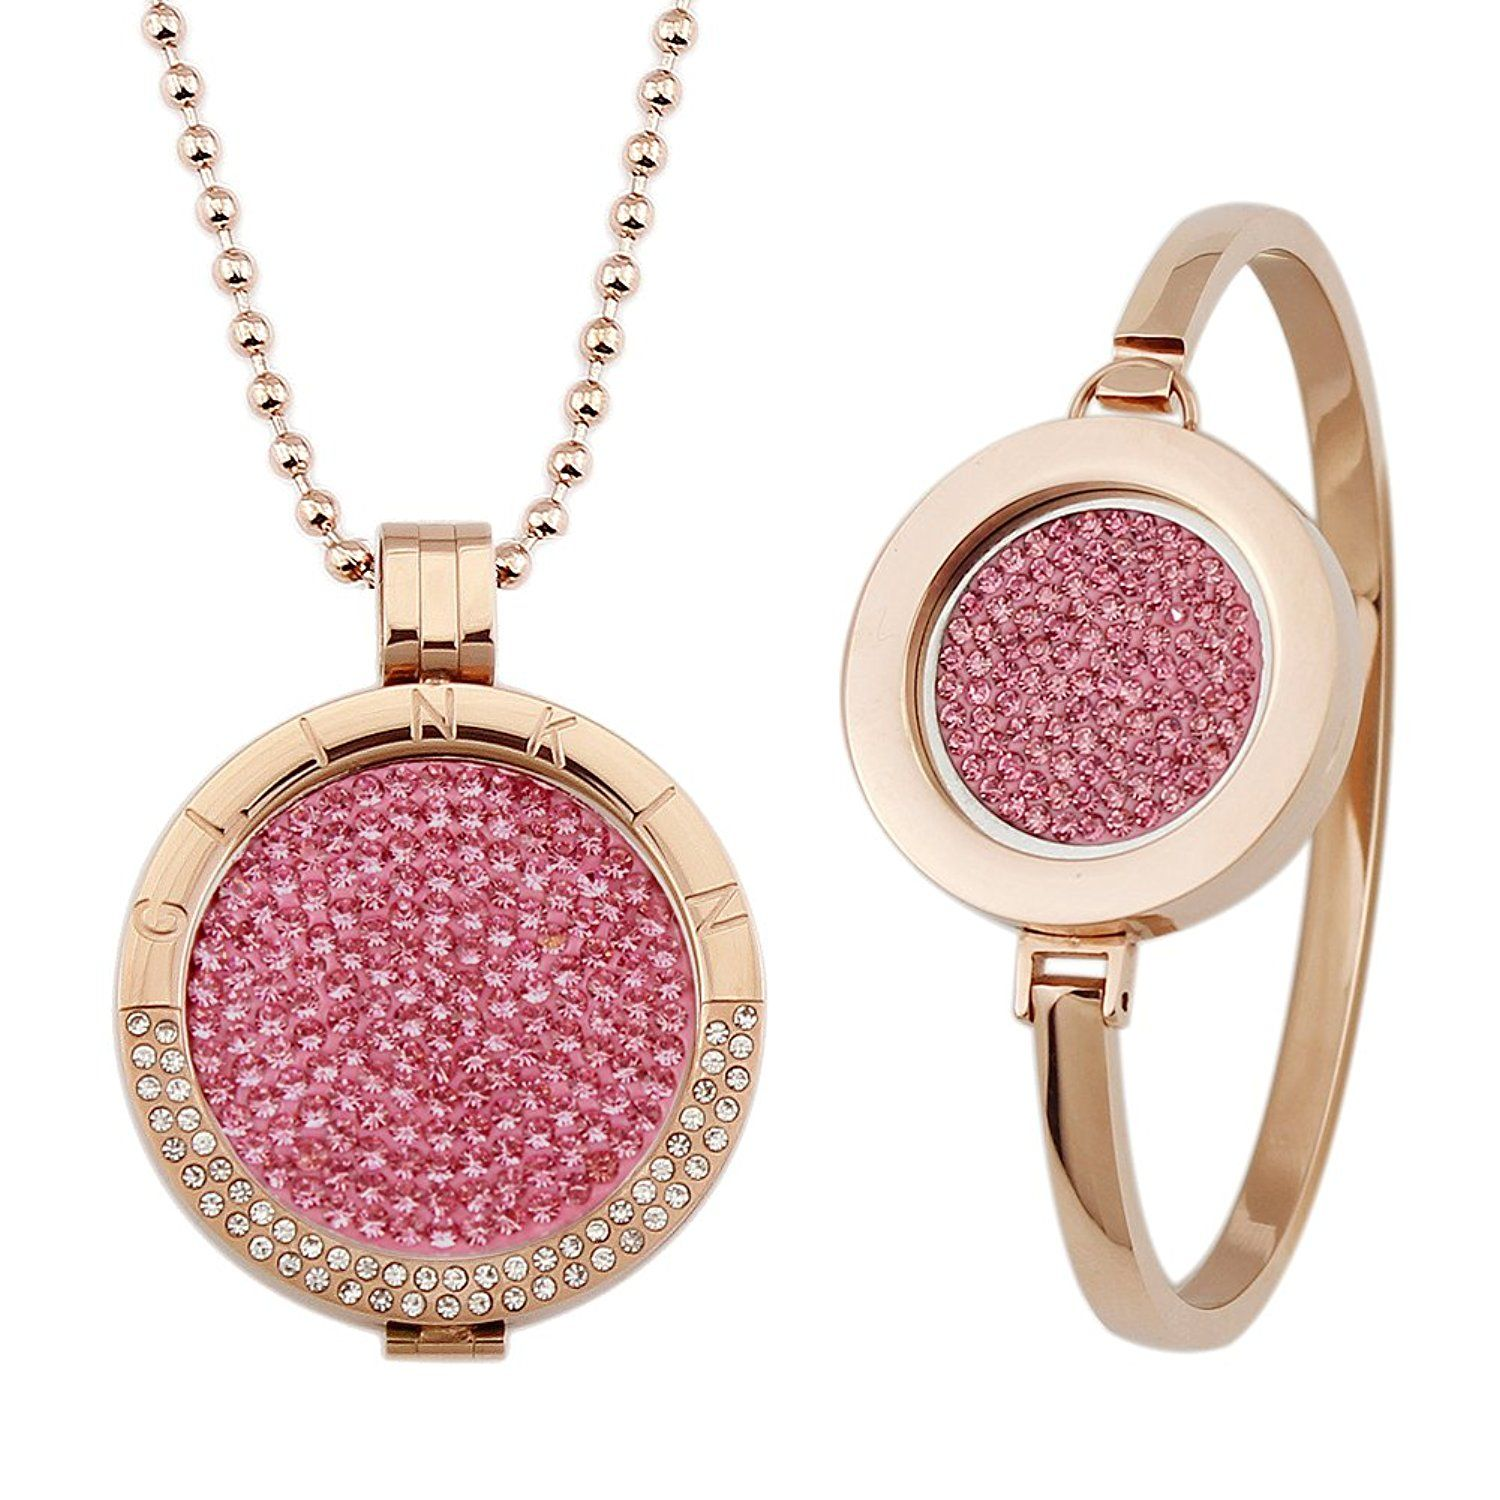 Glinkin stainless steel coin necklace and bangle set k rose gold